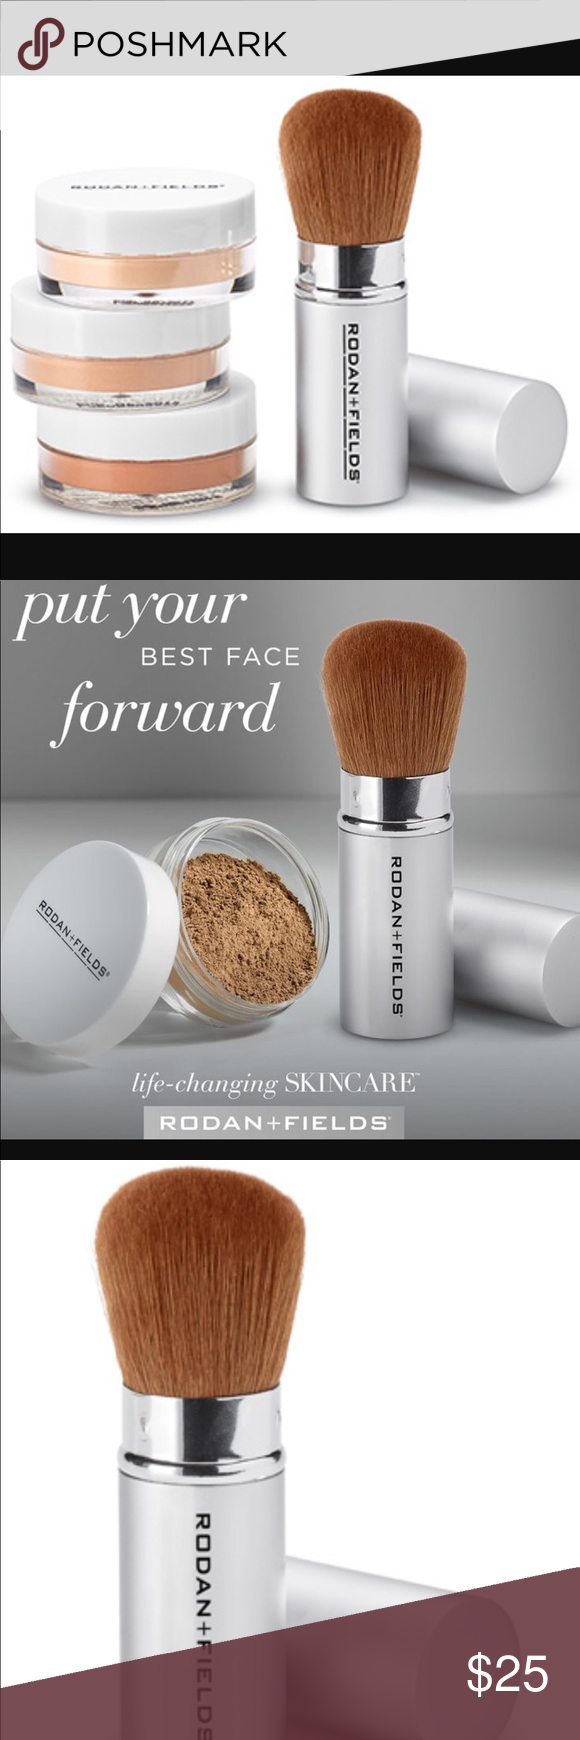 NEW peptides kabuki brush! ENHANCEMENTS Mineral Peptides